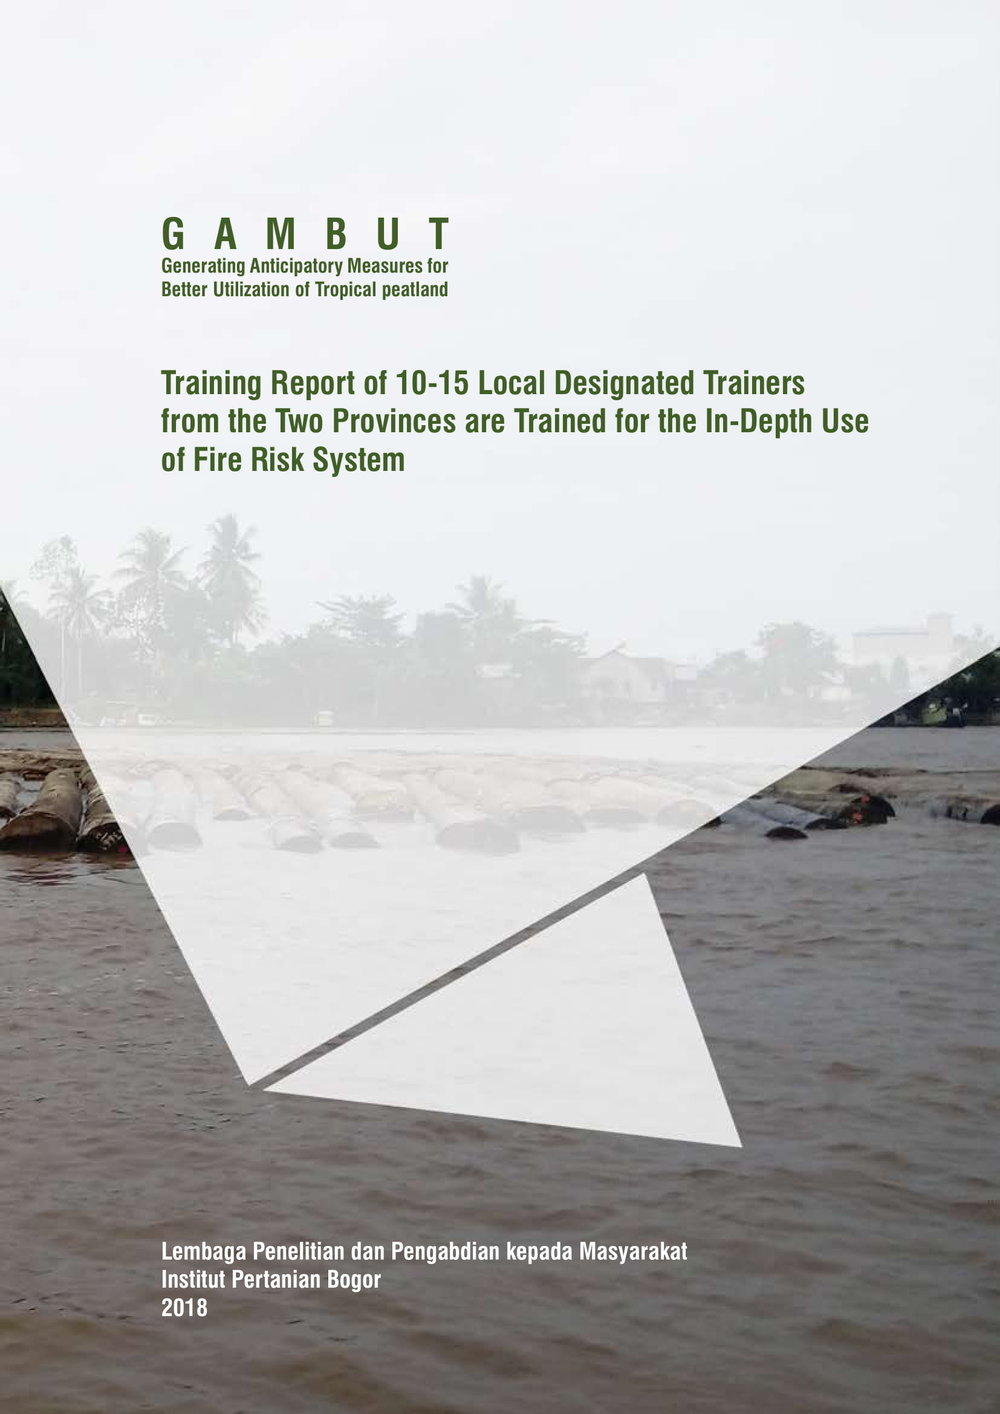 1 training report of 10-15 local designated trainers-1.jpg